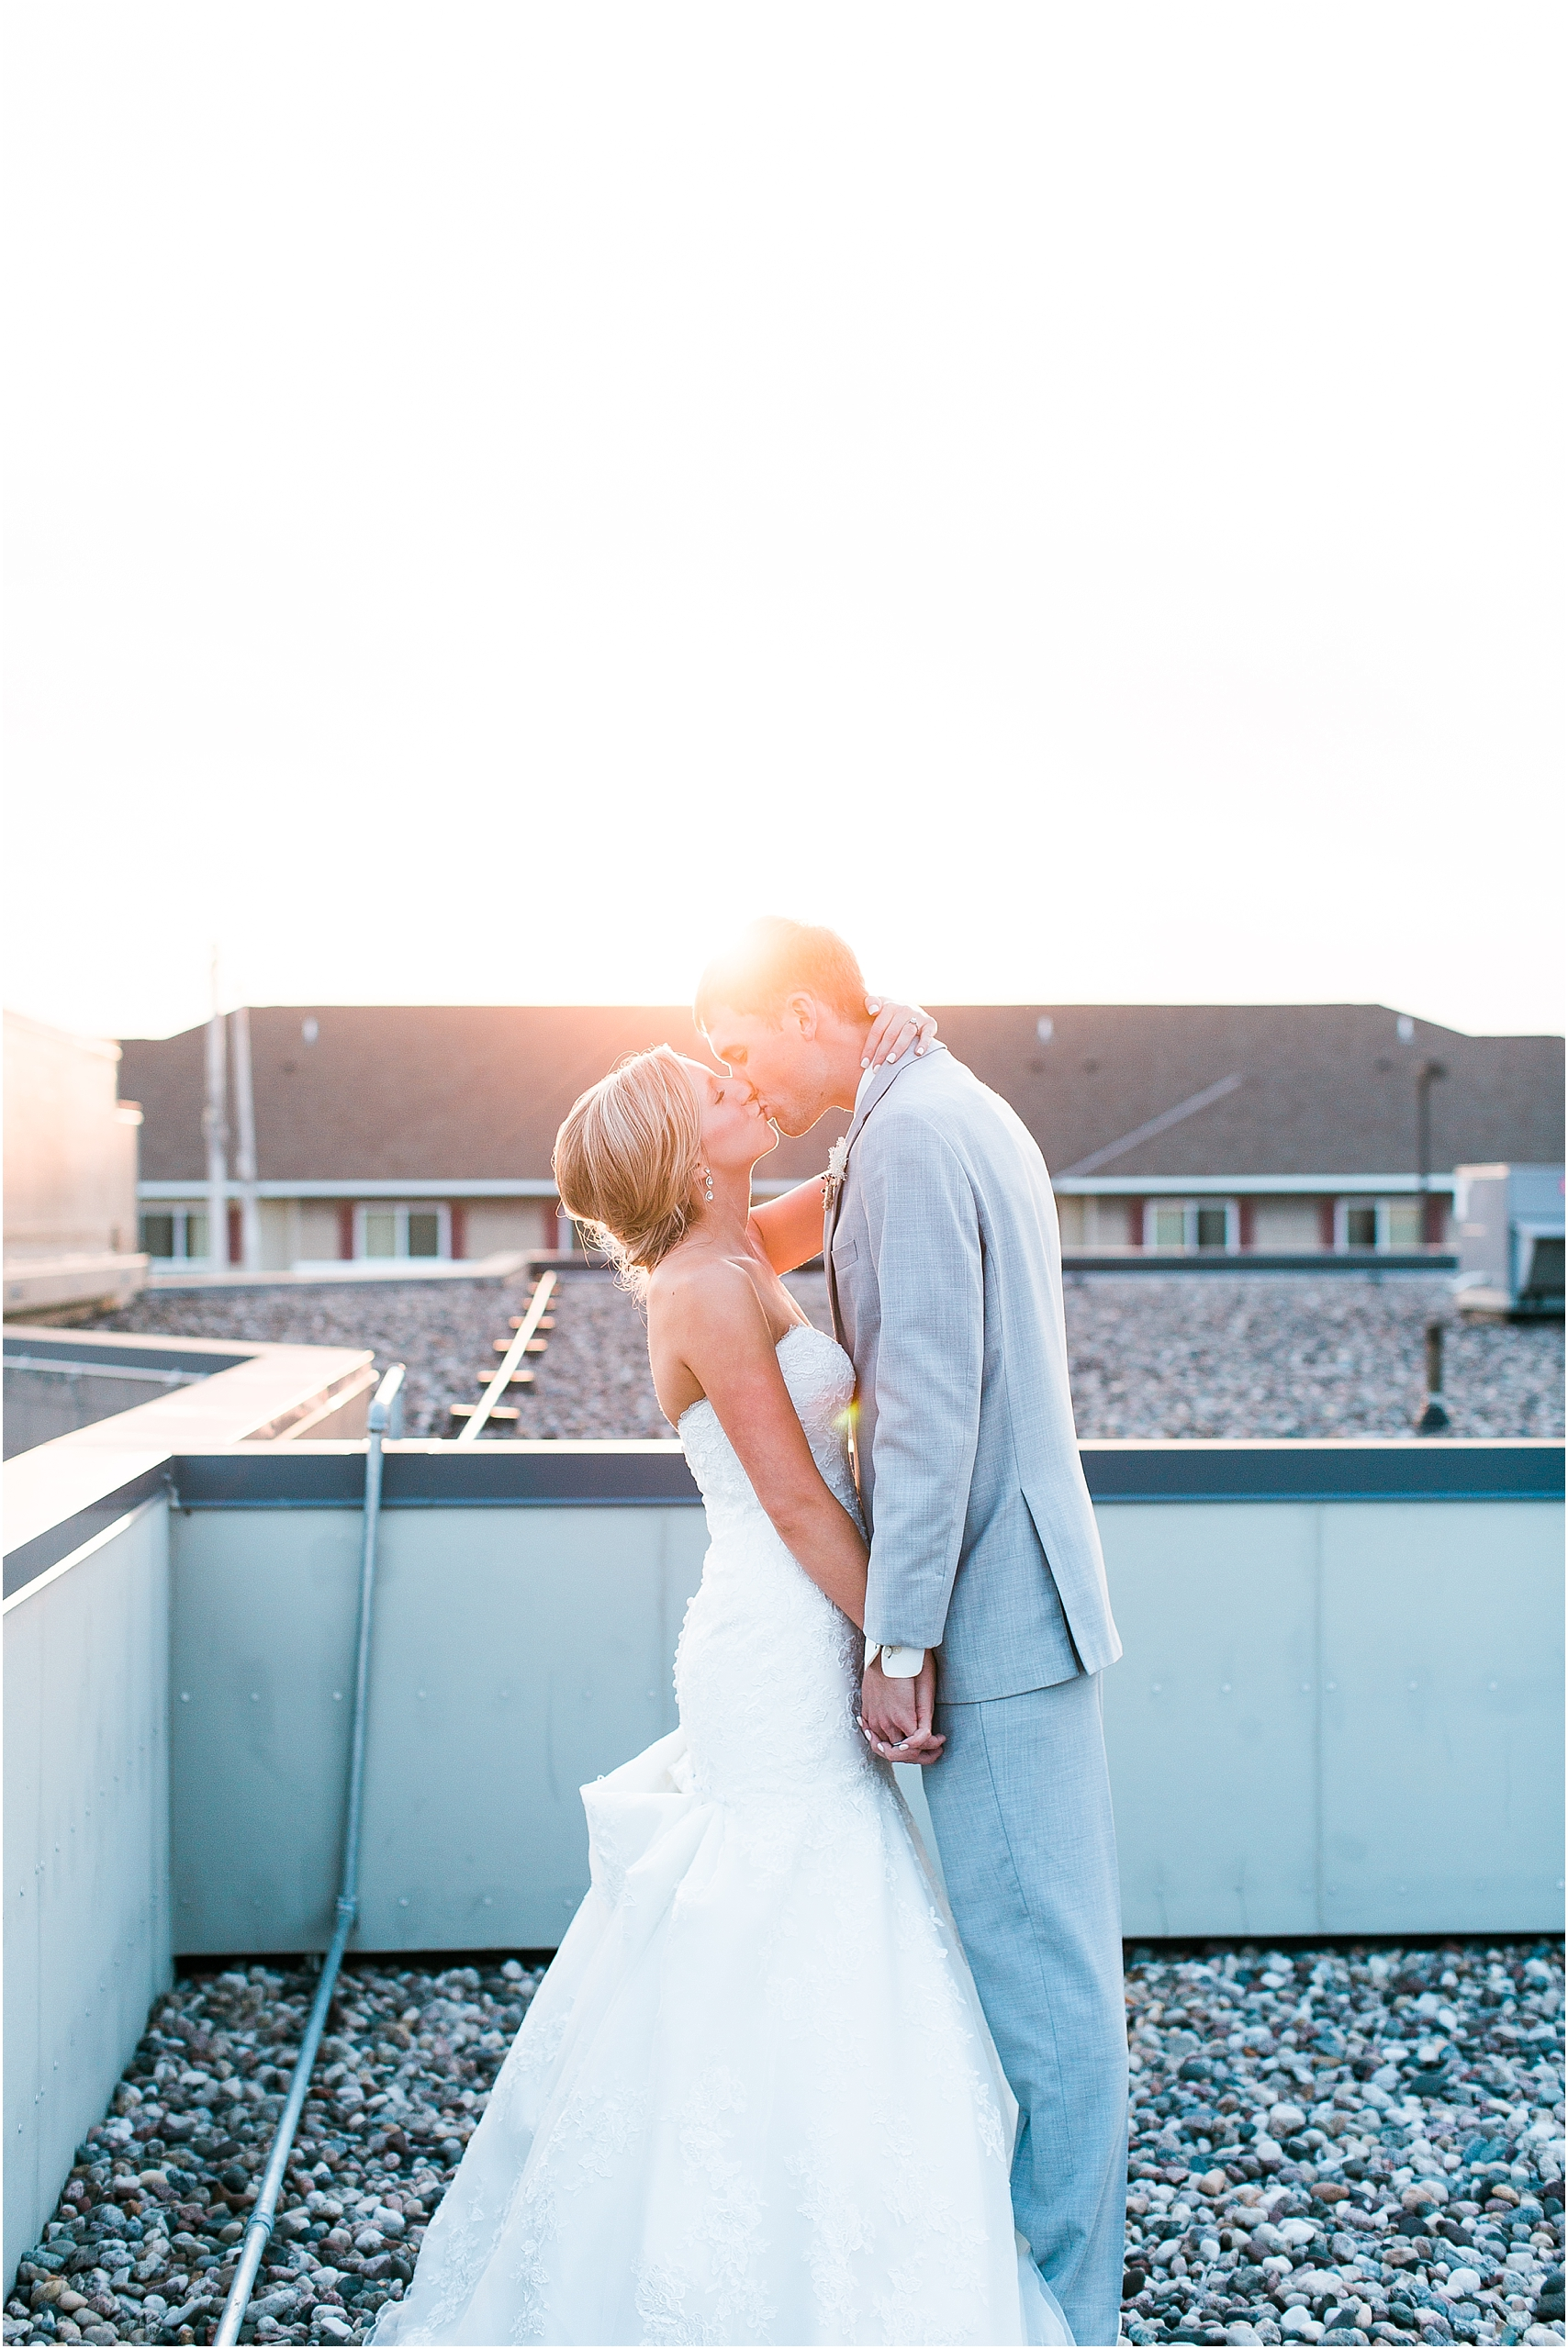 Bride and groom sunset rooftop portrait outside at Minnesota summer wedding in Buffalo MN photographed by Mallory Kiesow, Minnesota wedding photographer